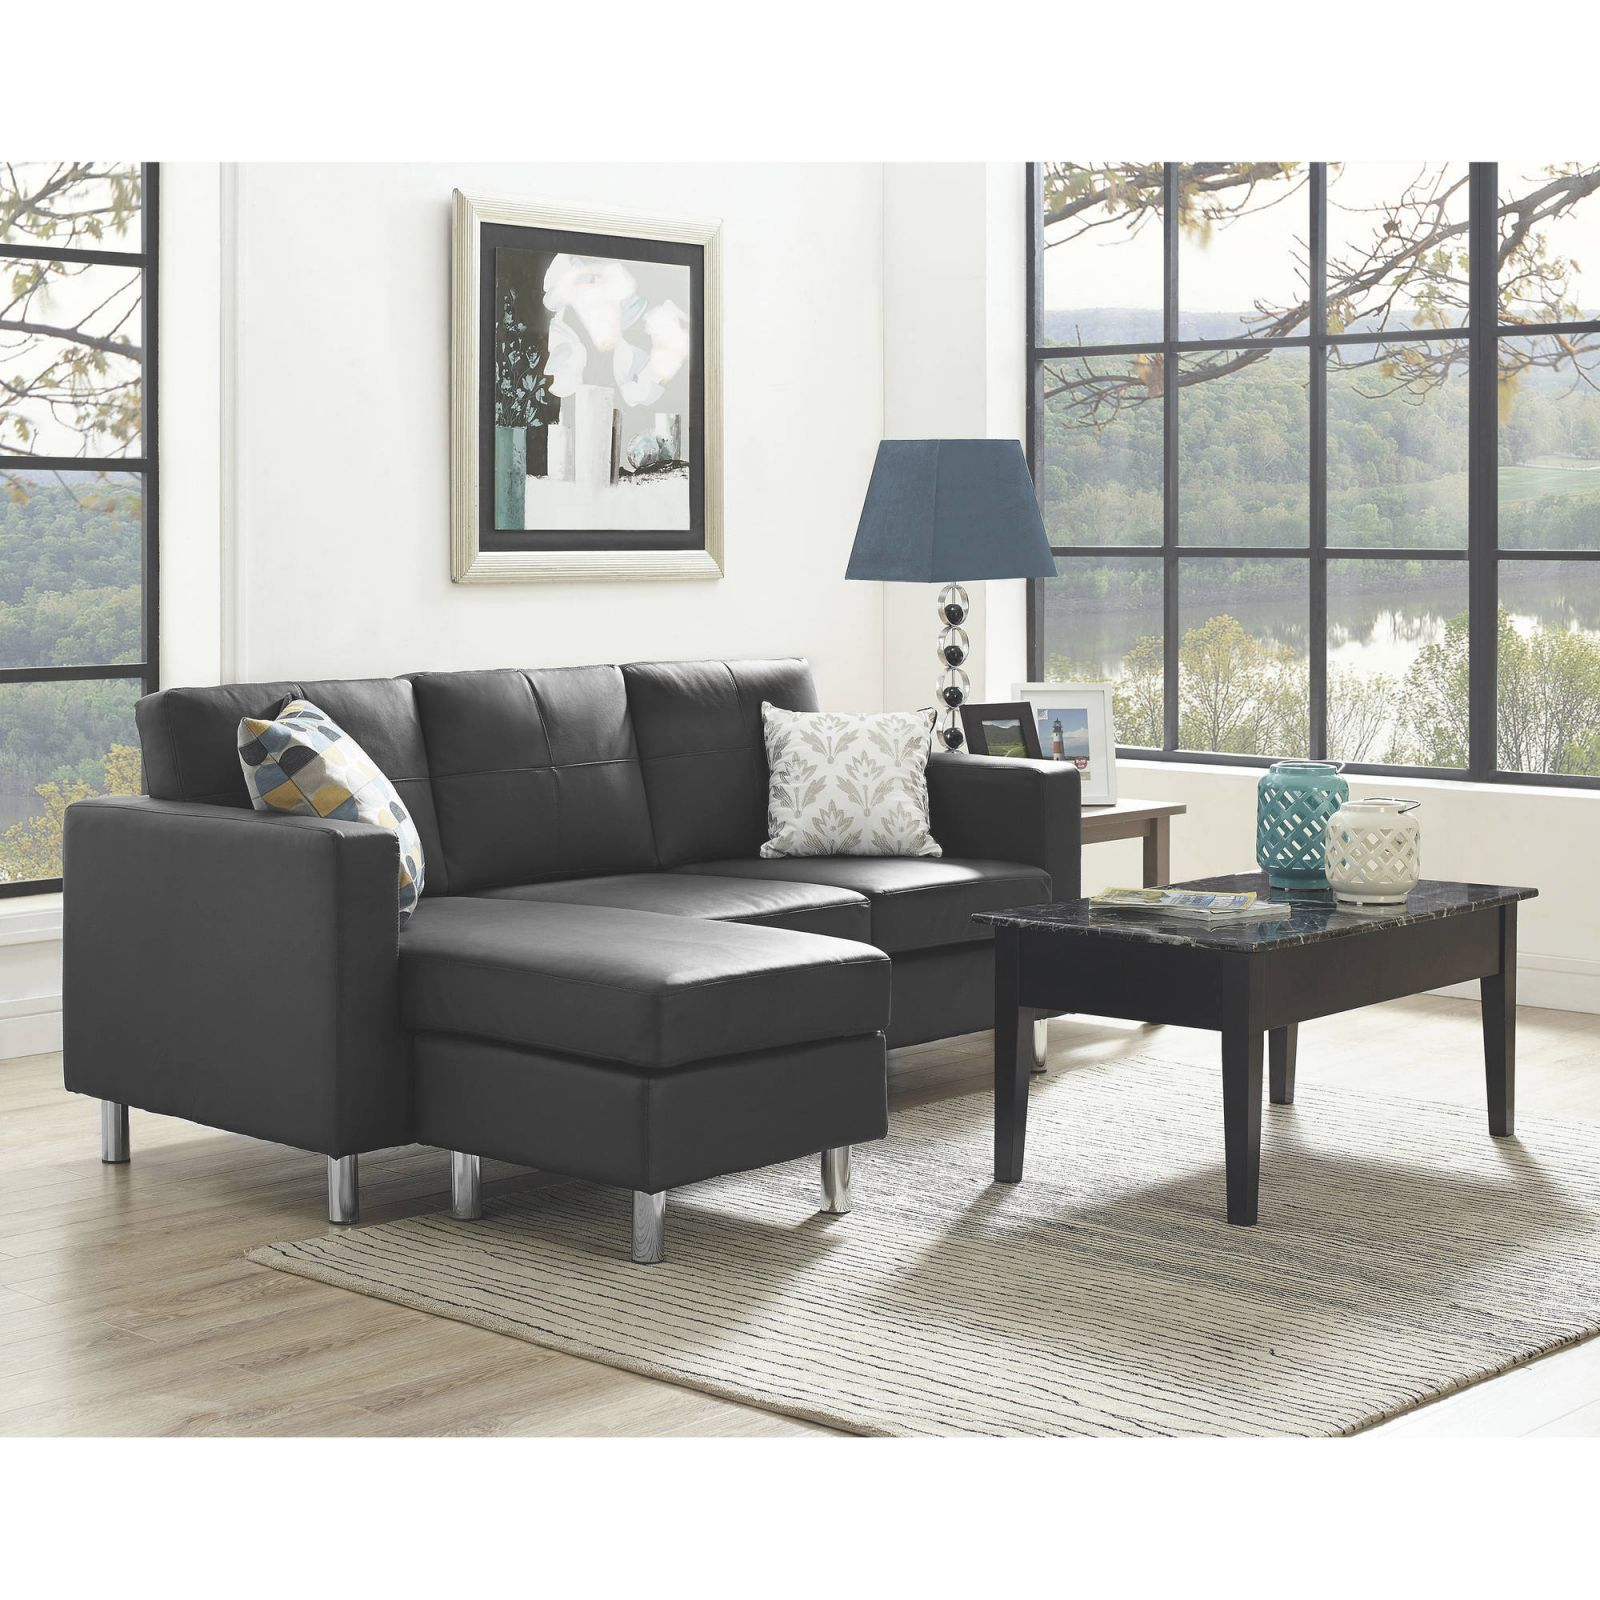 Small Spaces Living Room Value Bundle - Walmart throughout Awesome Furniture For Small Spaces Living Room